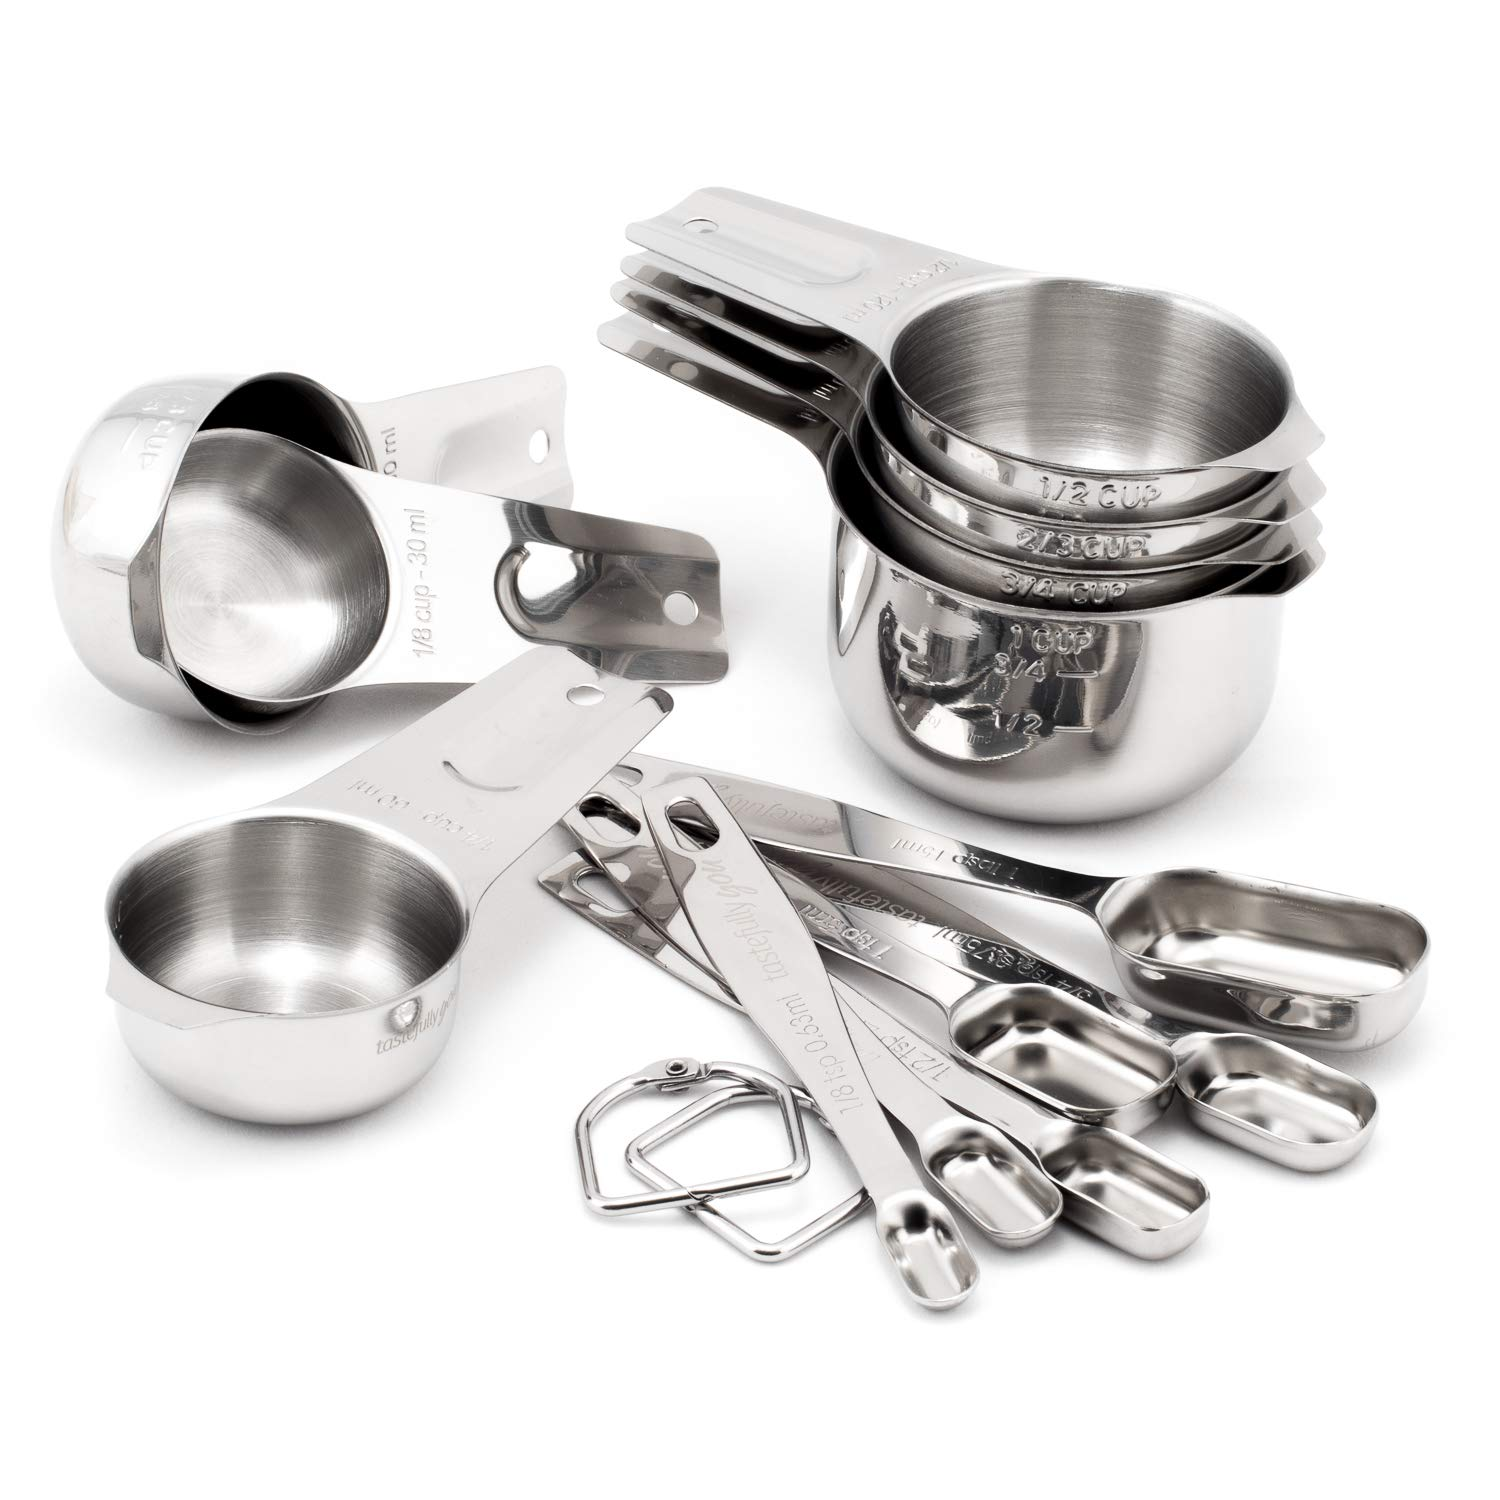 Tastefully You - 13-Piece Stainless Steel Dry Measuring Set Featuring 7 Cups and 6 Spoons - Durable and Long Lasting Metal Set is Dishwasher Safe - Provides Years of Active and Helpful Kitchen Use by Tastefully You